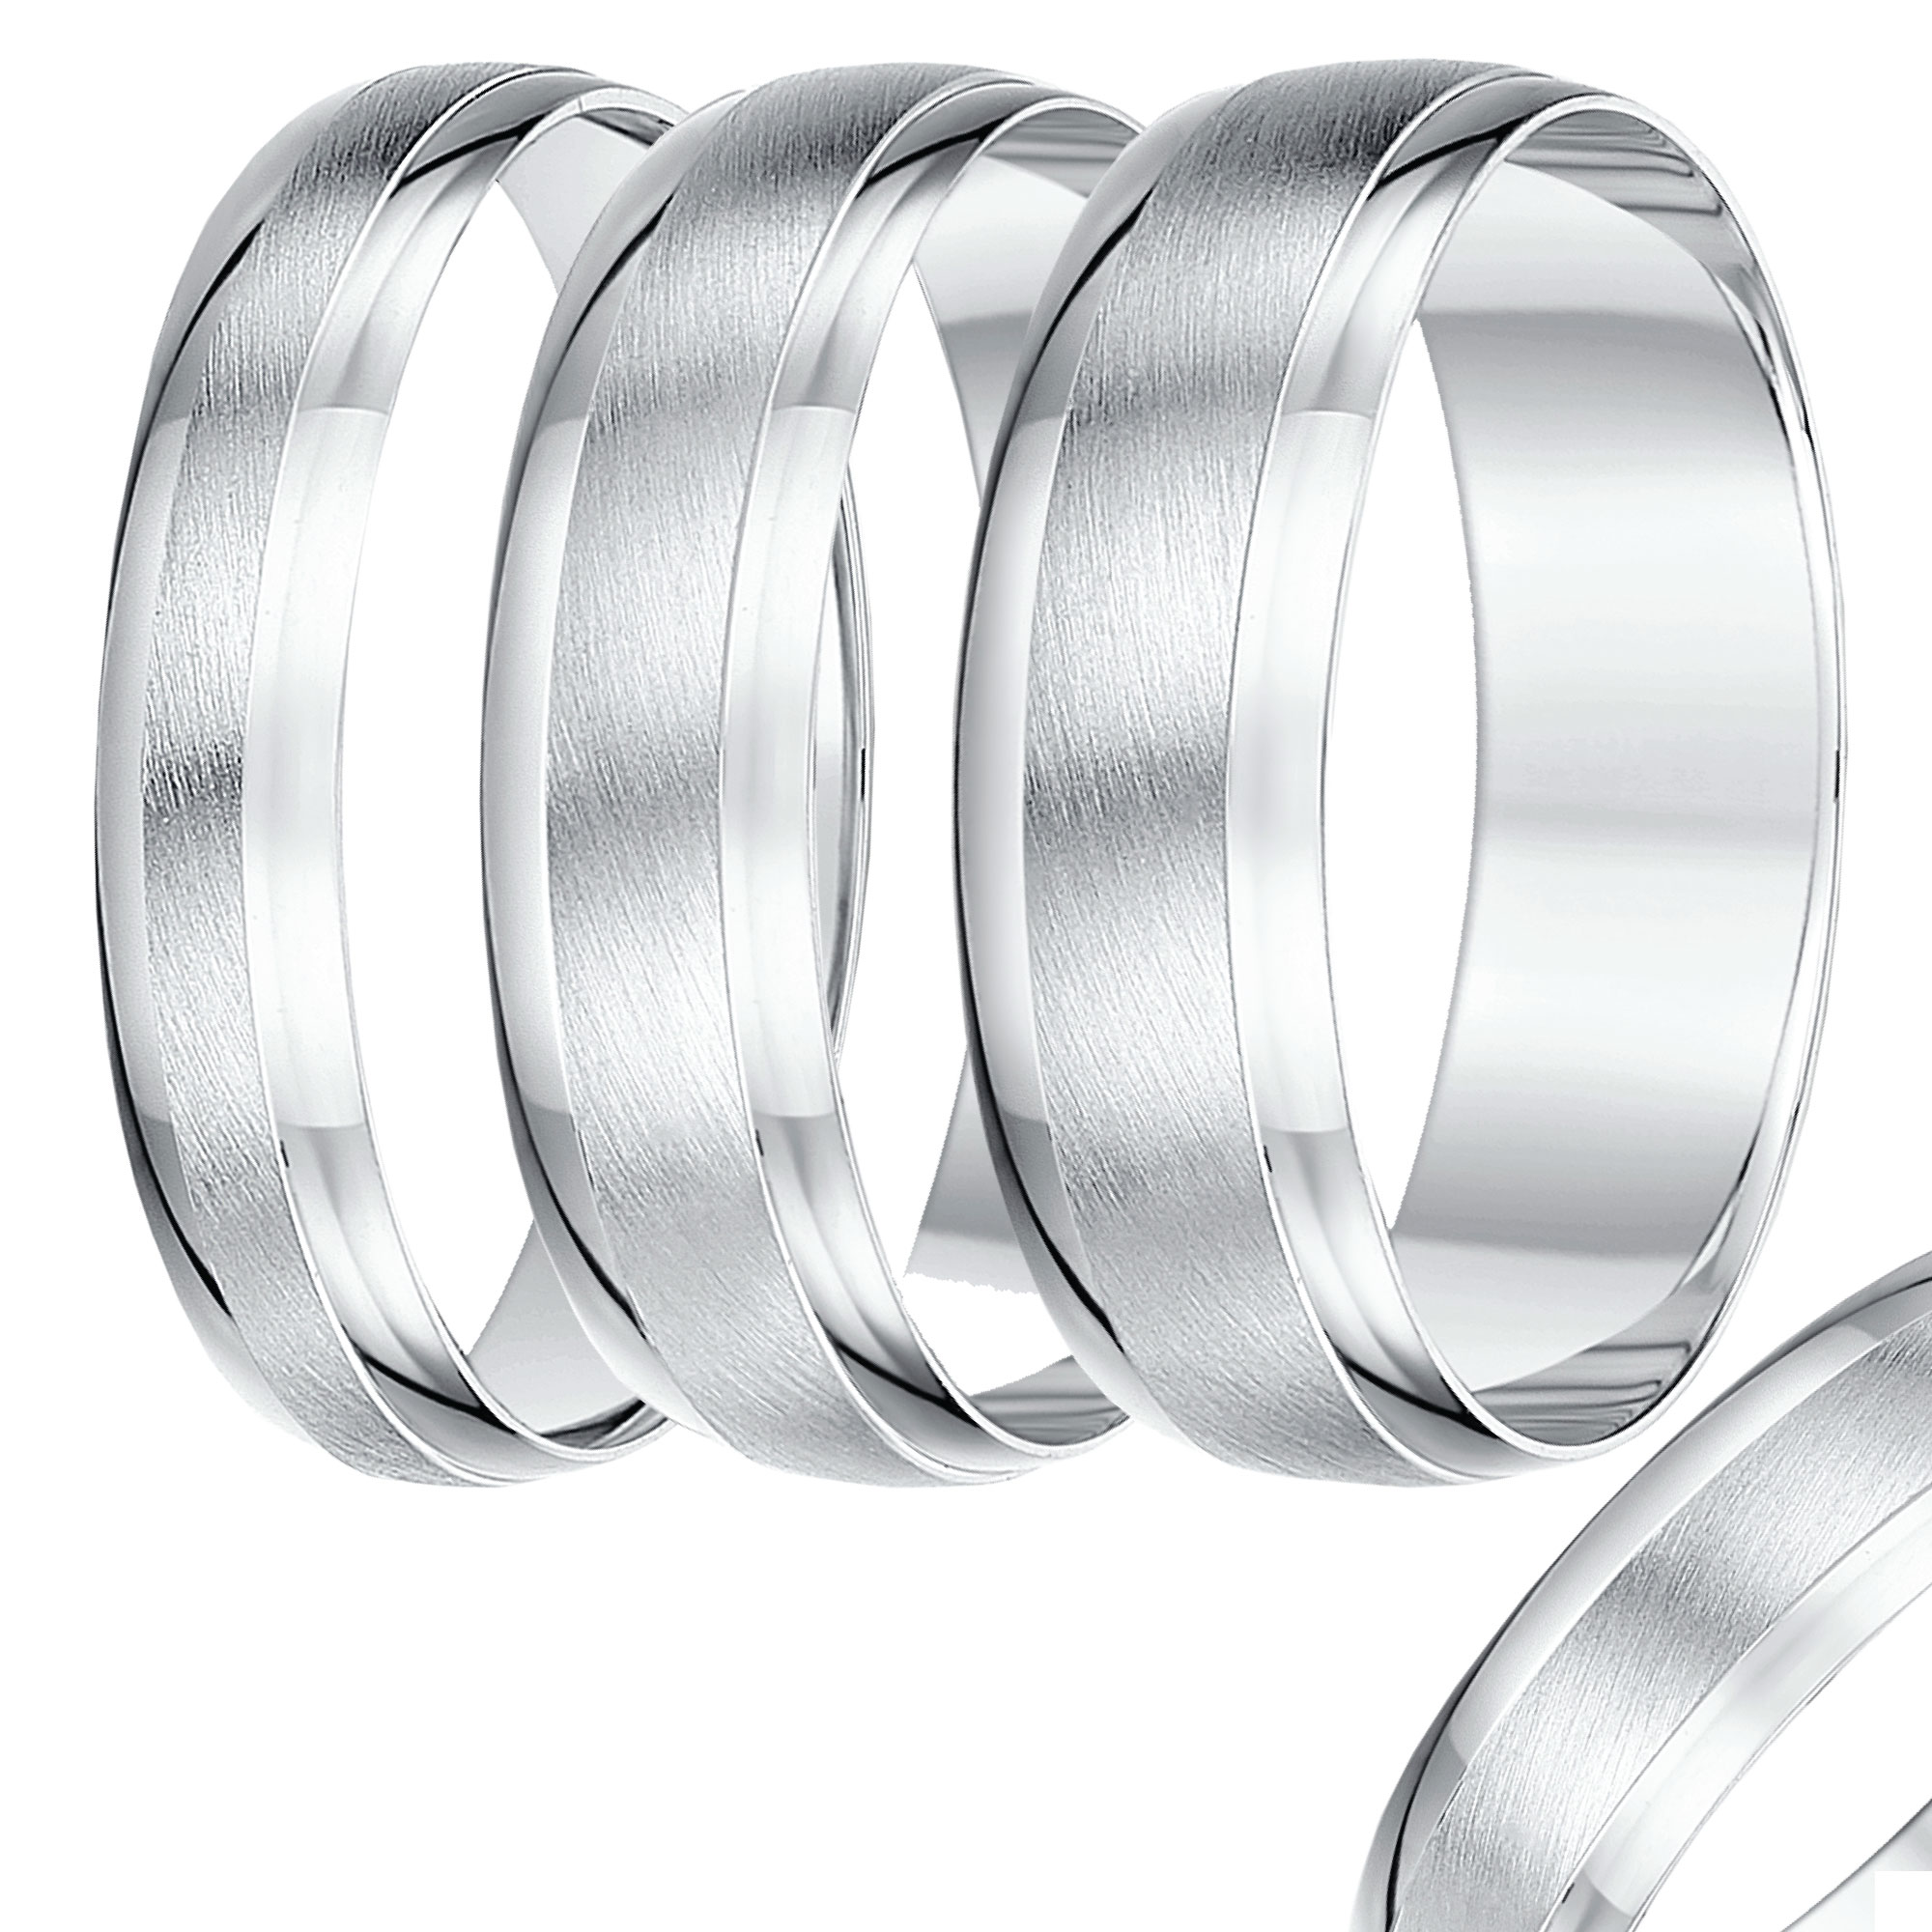 4mm-8mm White Gold Textured & Polished Wedding Band